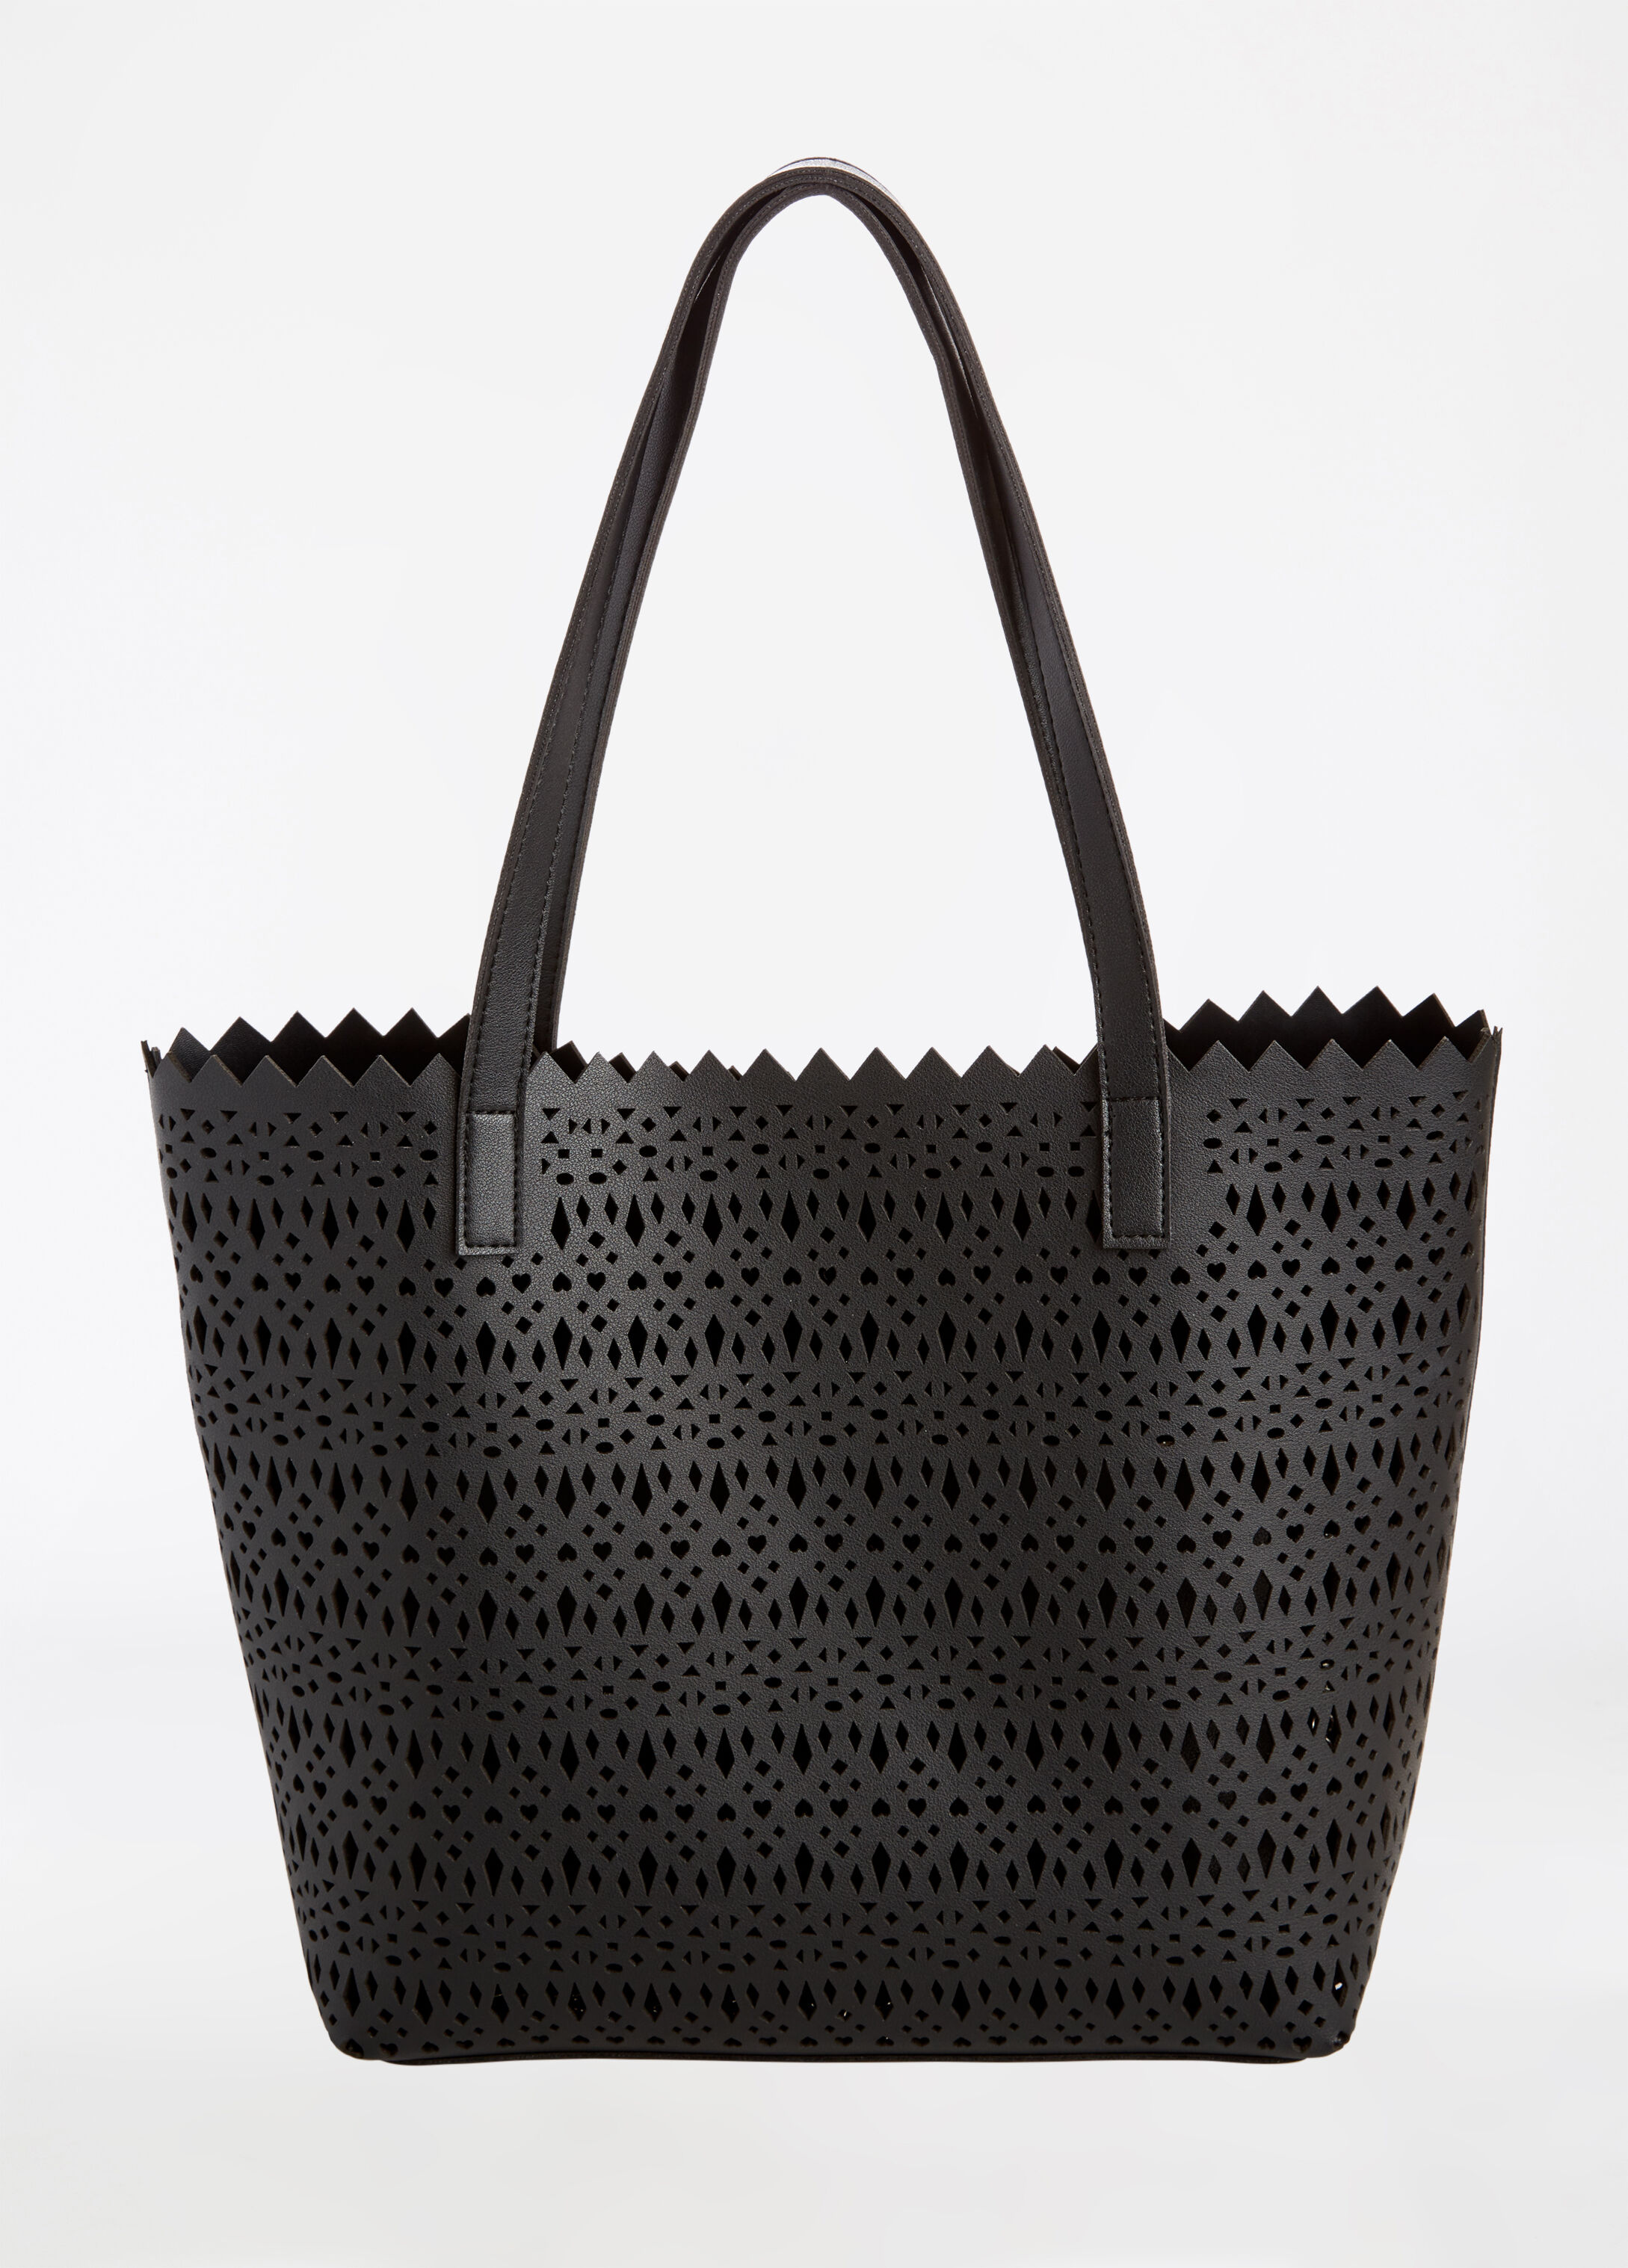 Cutout Tote With Chain Strap Purse